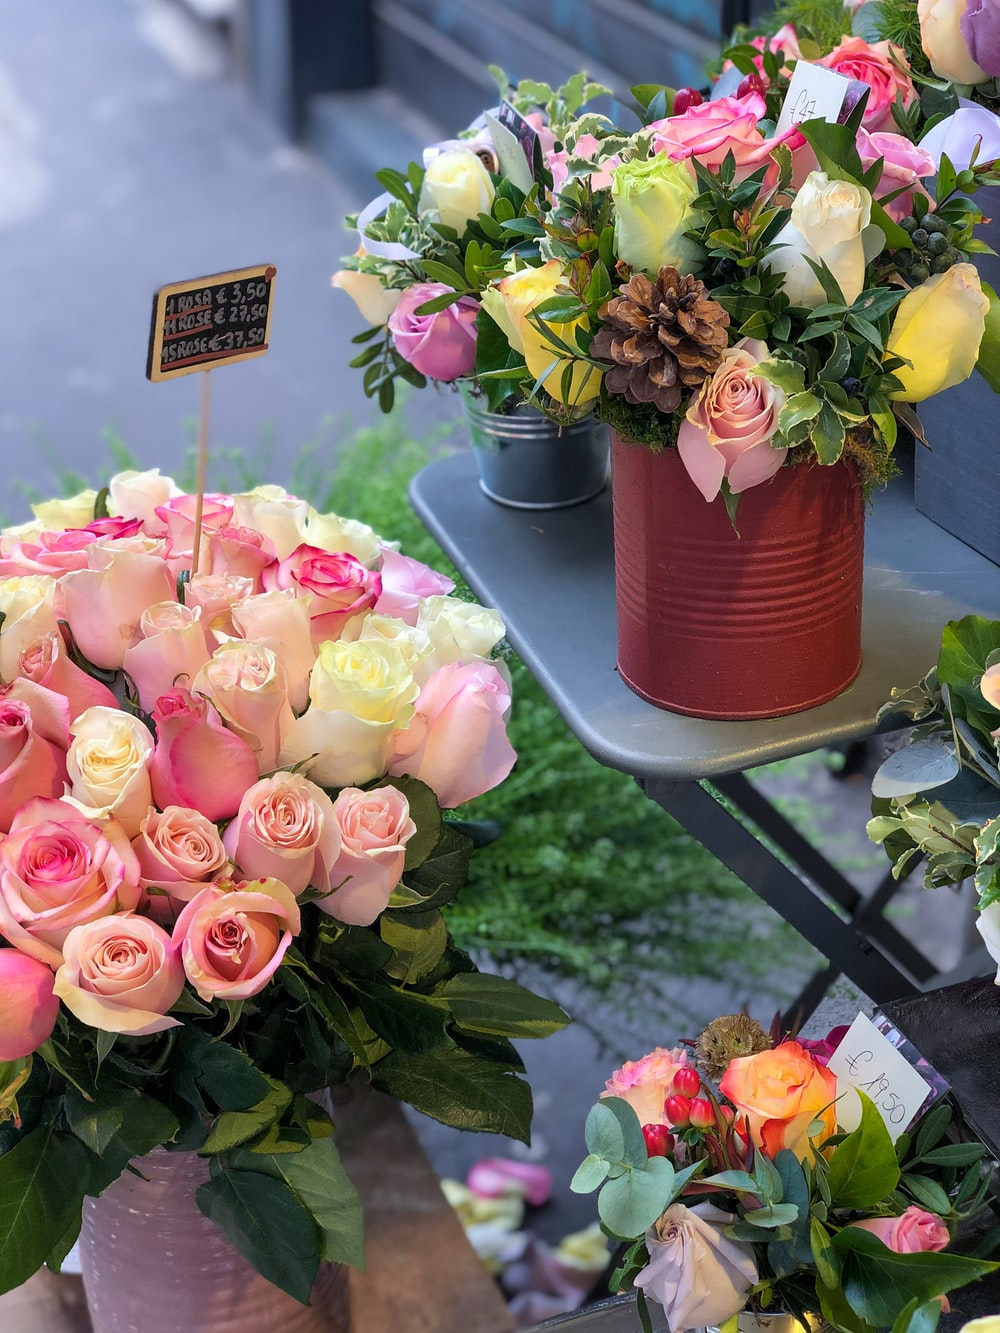 pink roses in pink plastic pot